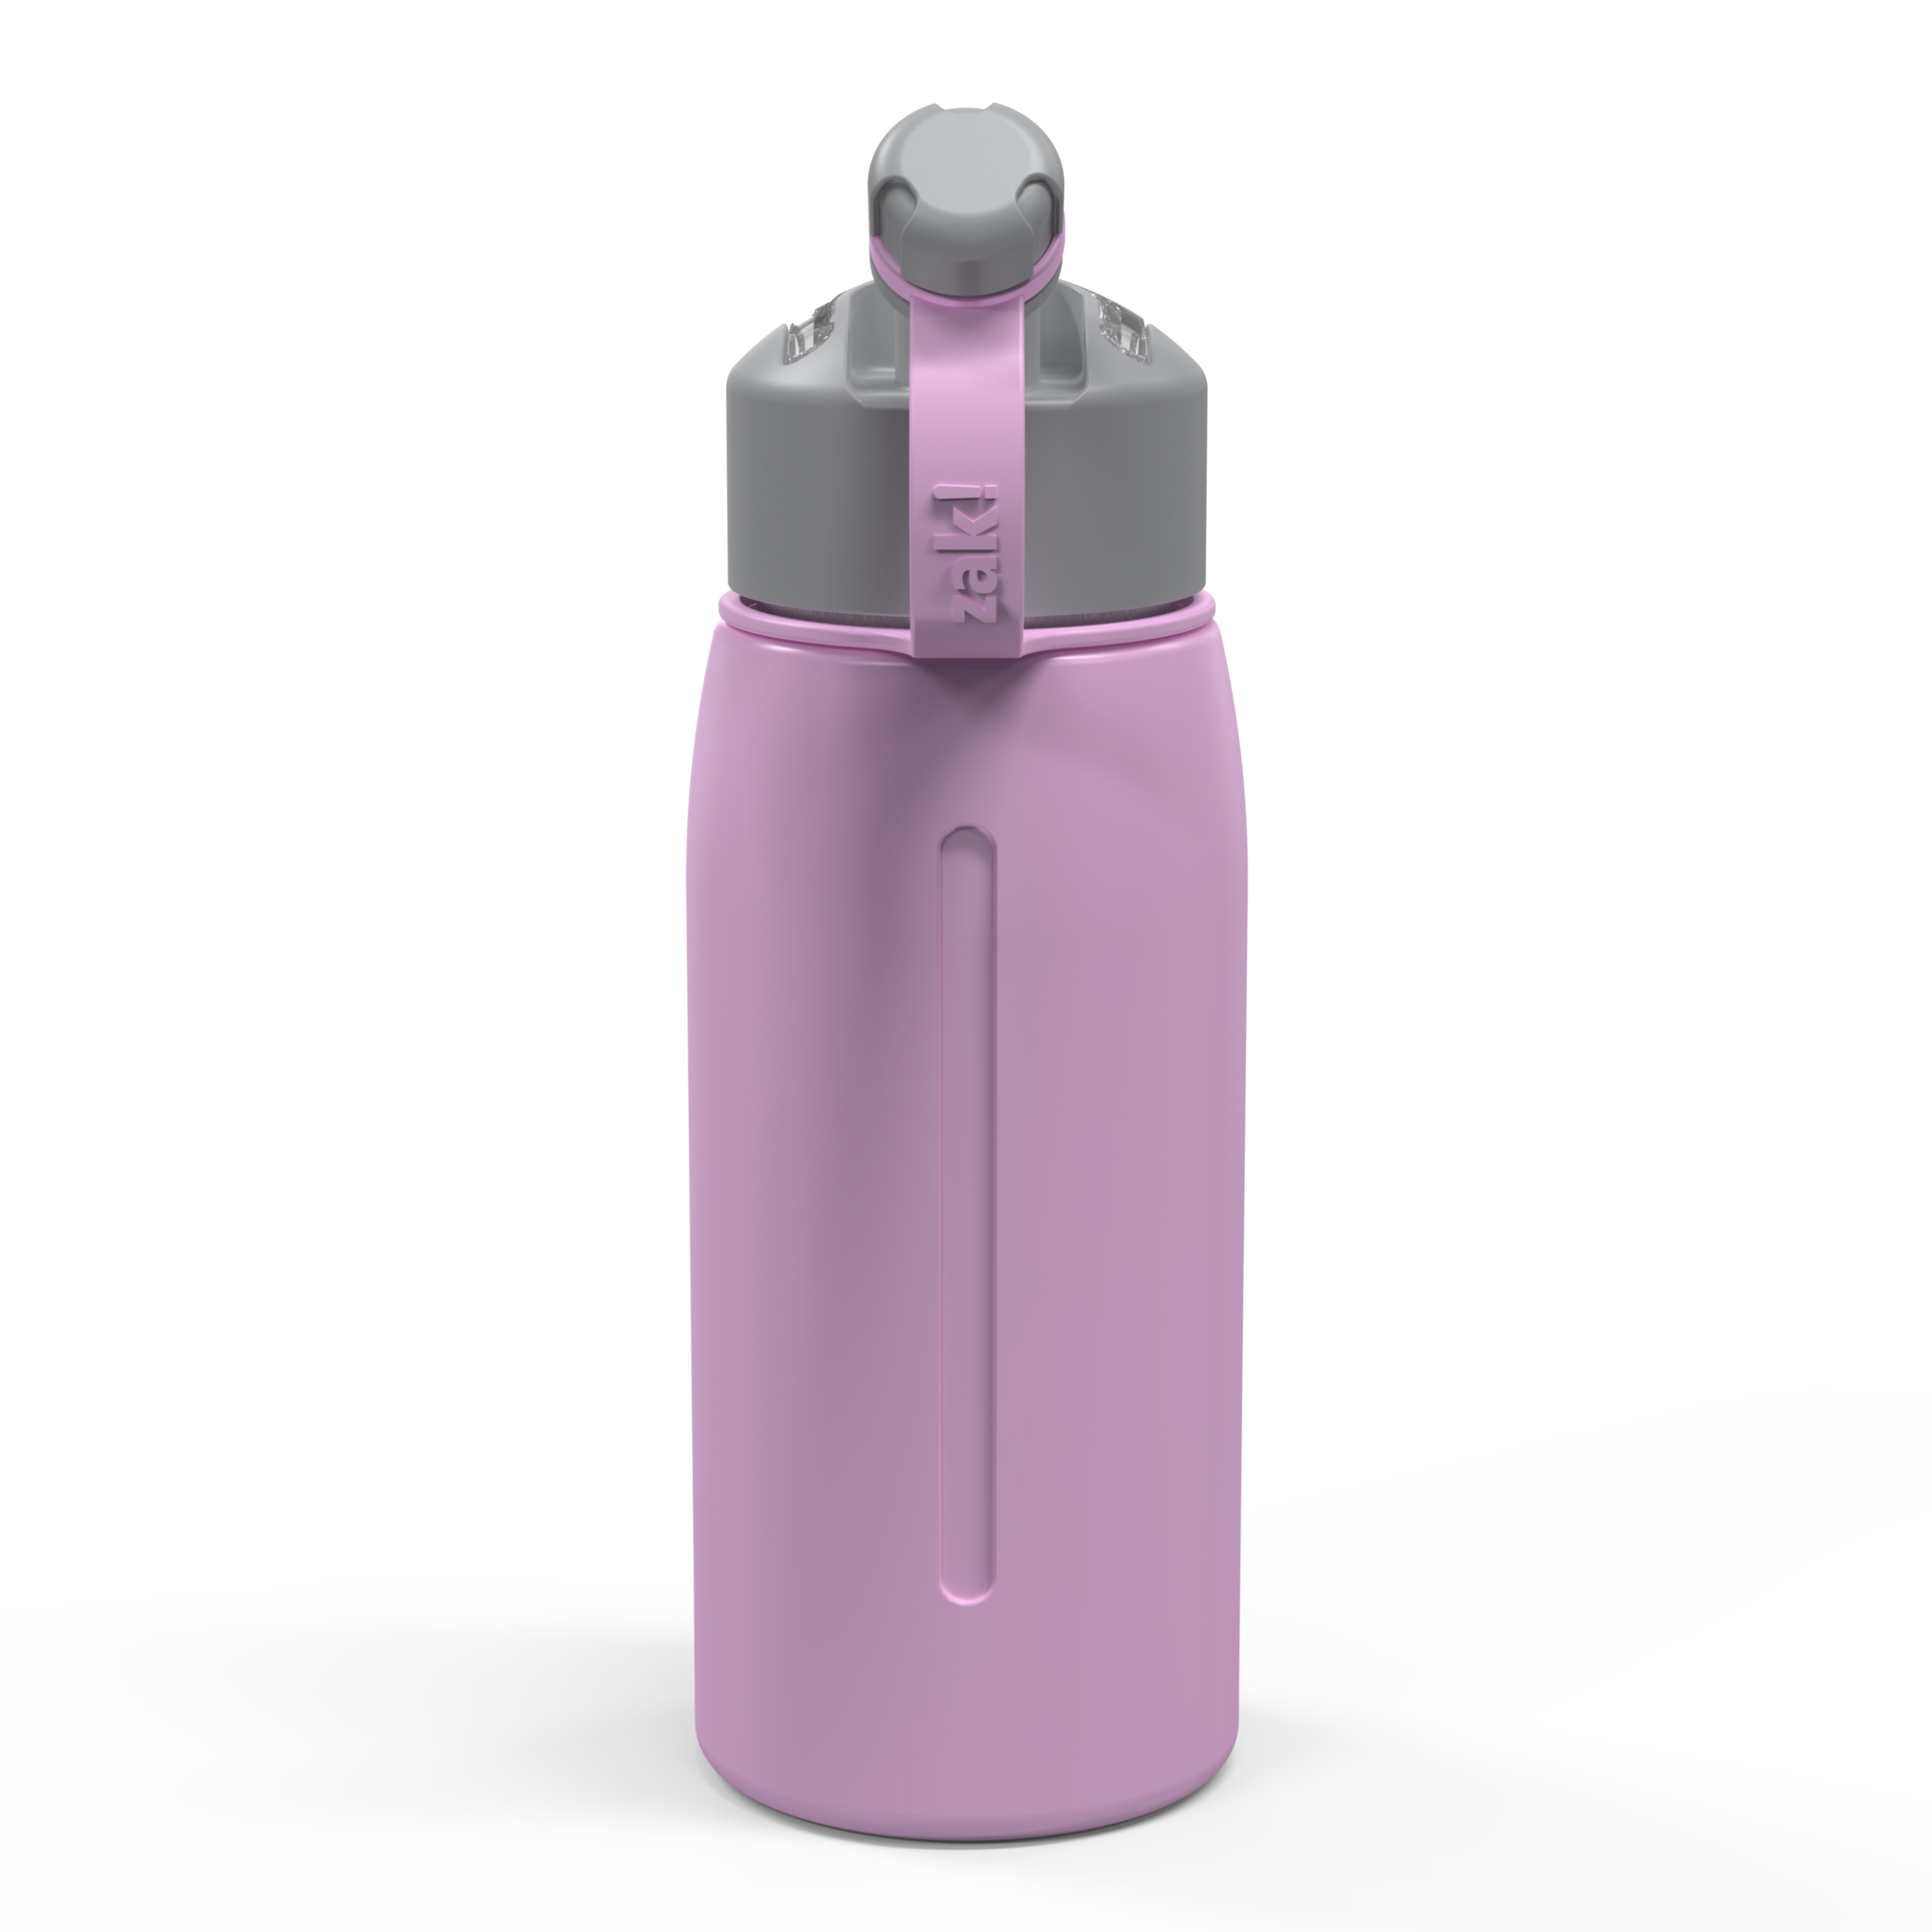 Genesis 24 ounce Vacuum Insulated Stainless Steel Tumbler, Lilac slideshow image 7